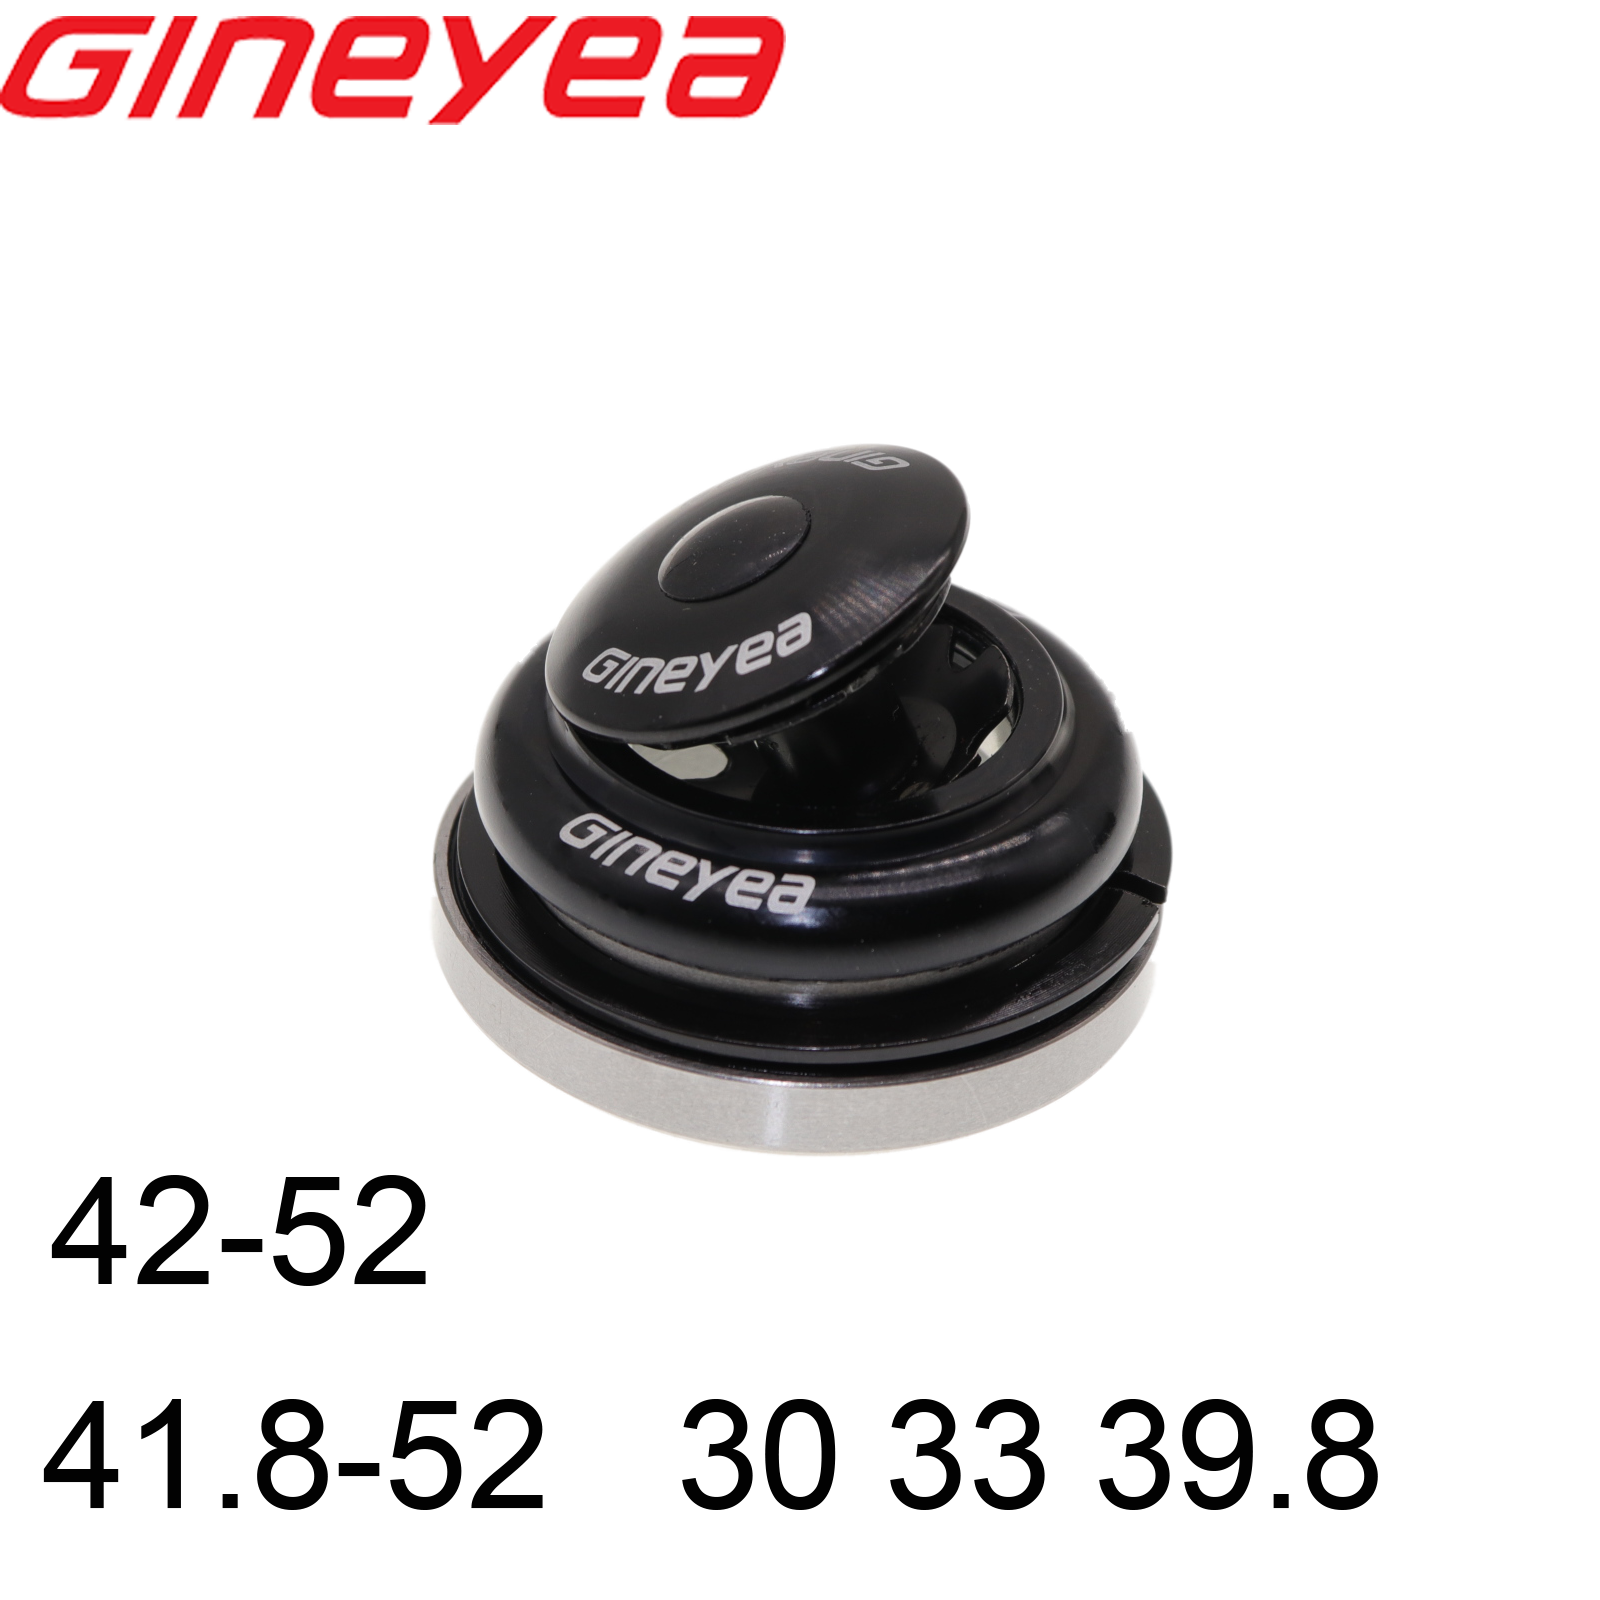 Gineyea bearing headset 41.8 42 <font><b>52</b></font> 46.9 47 <font><b>30</b></font> 33 39.8 mm straight fork tapered bike MTB road carbon tube image